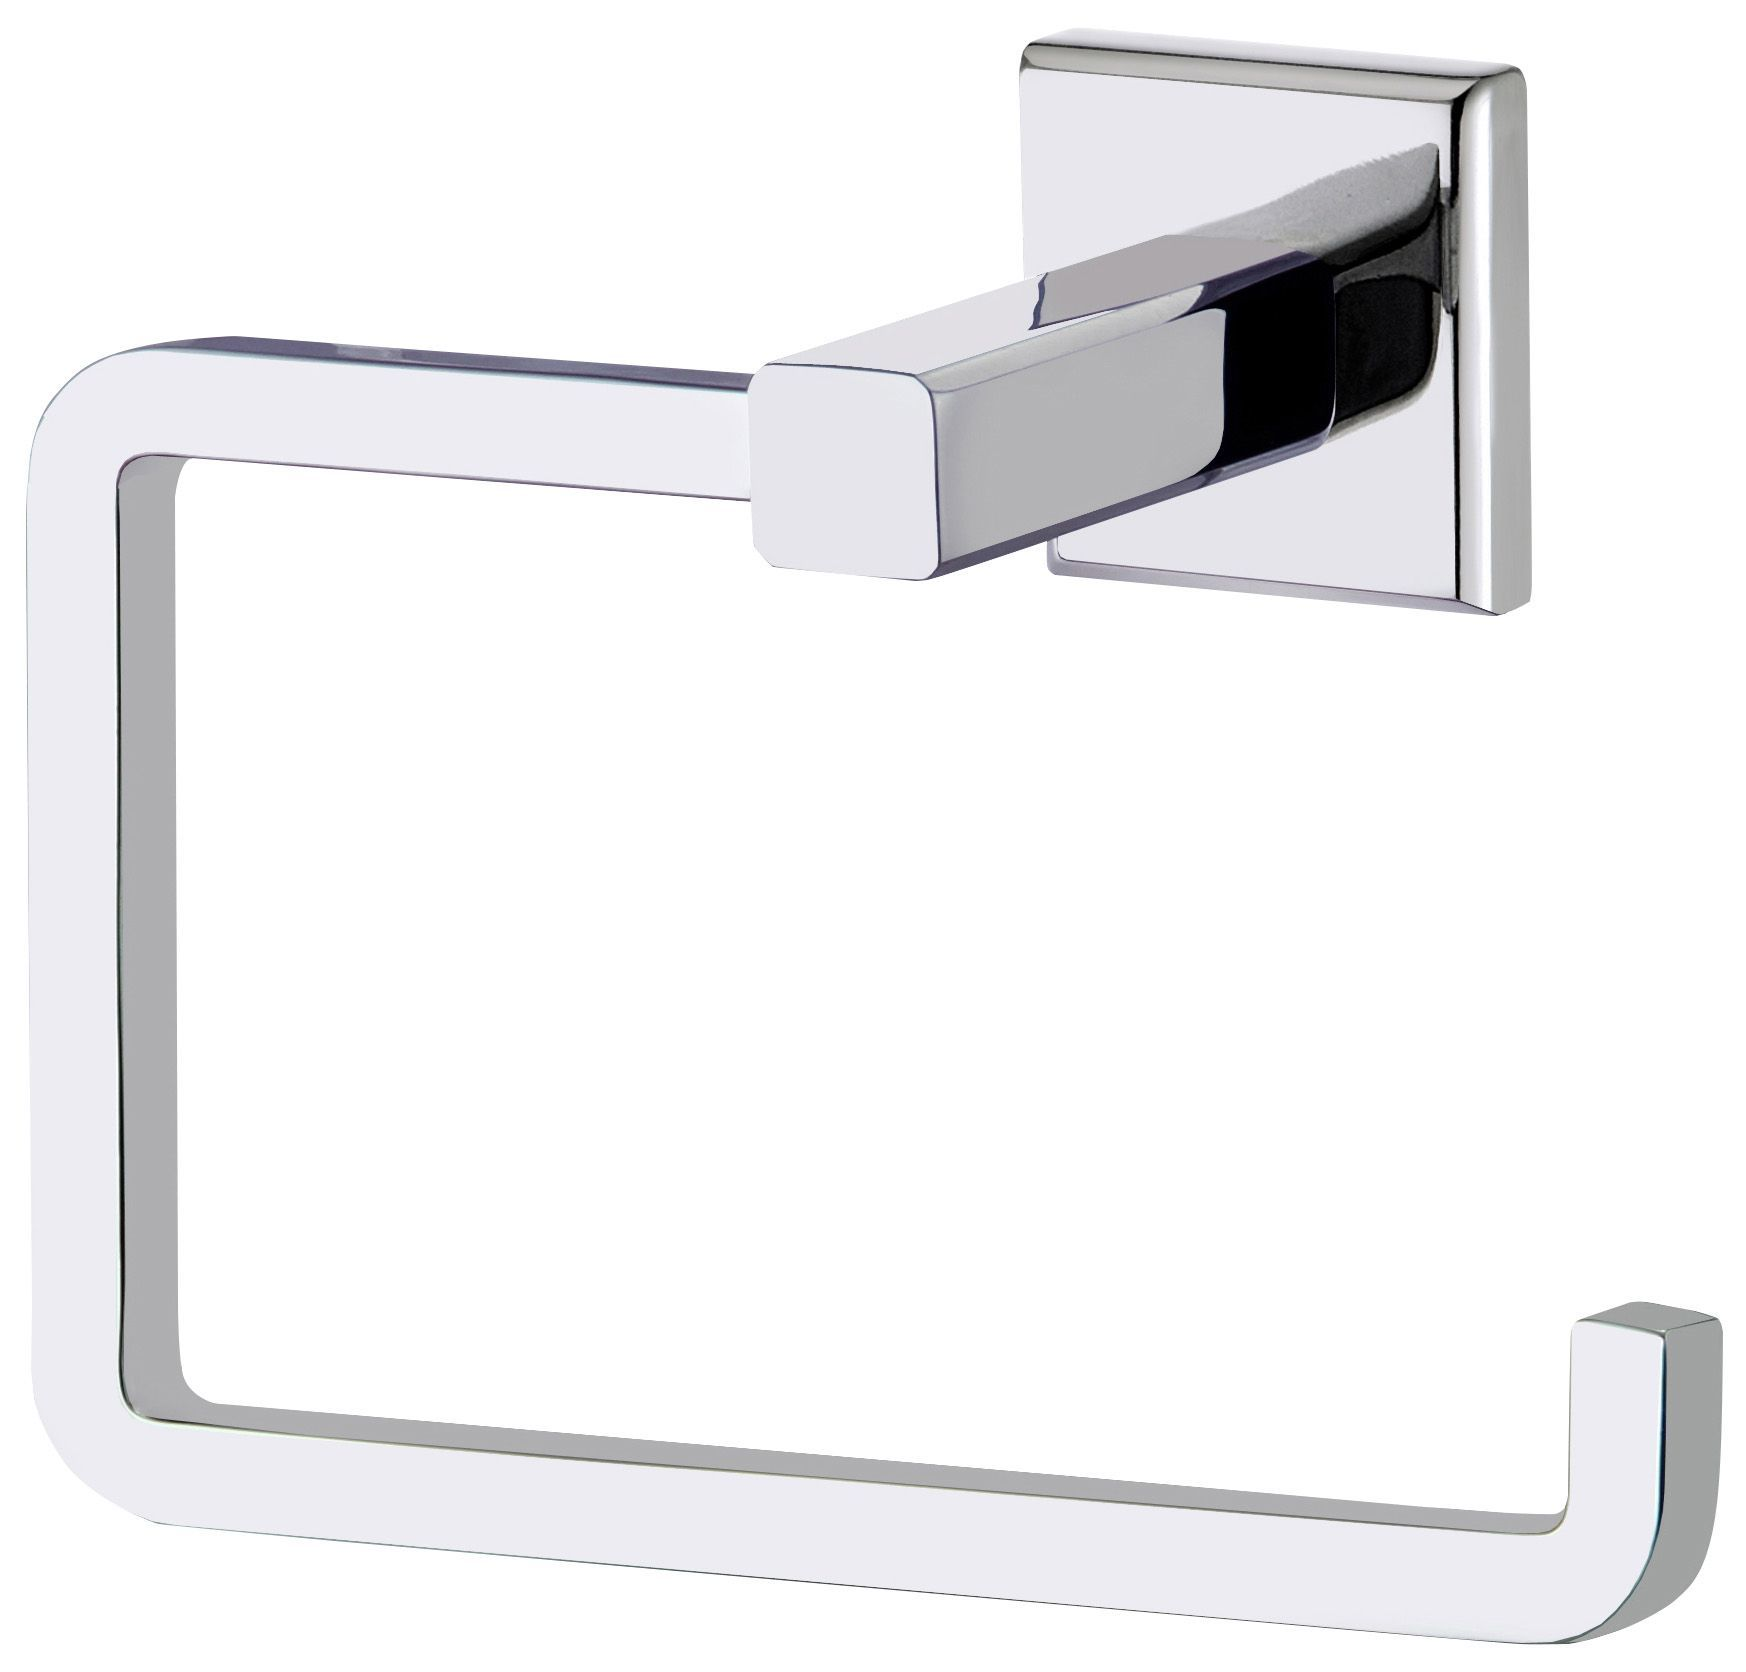 Cooke & Lewis Linear Silver Chrome effect Toilet roll holder, (W ...